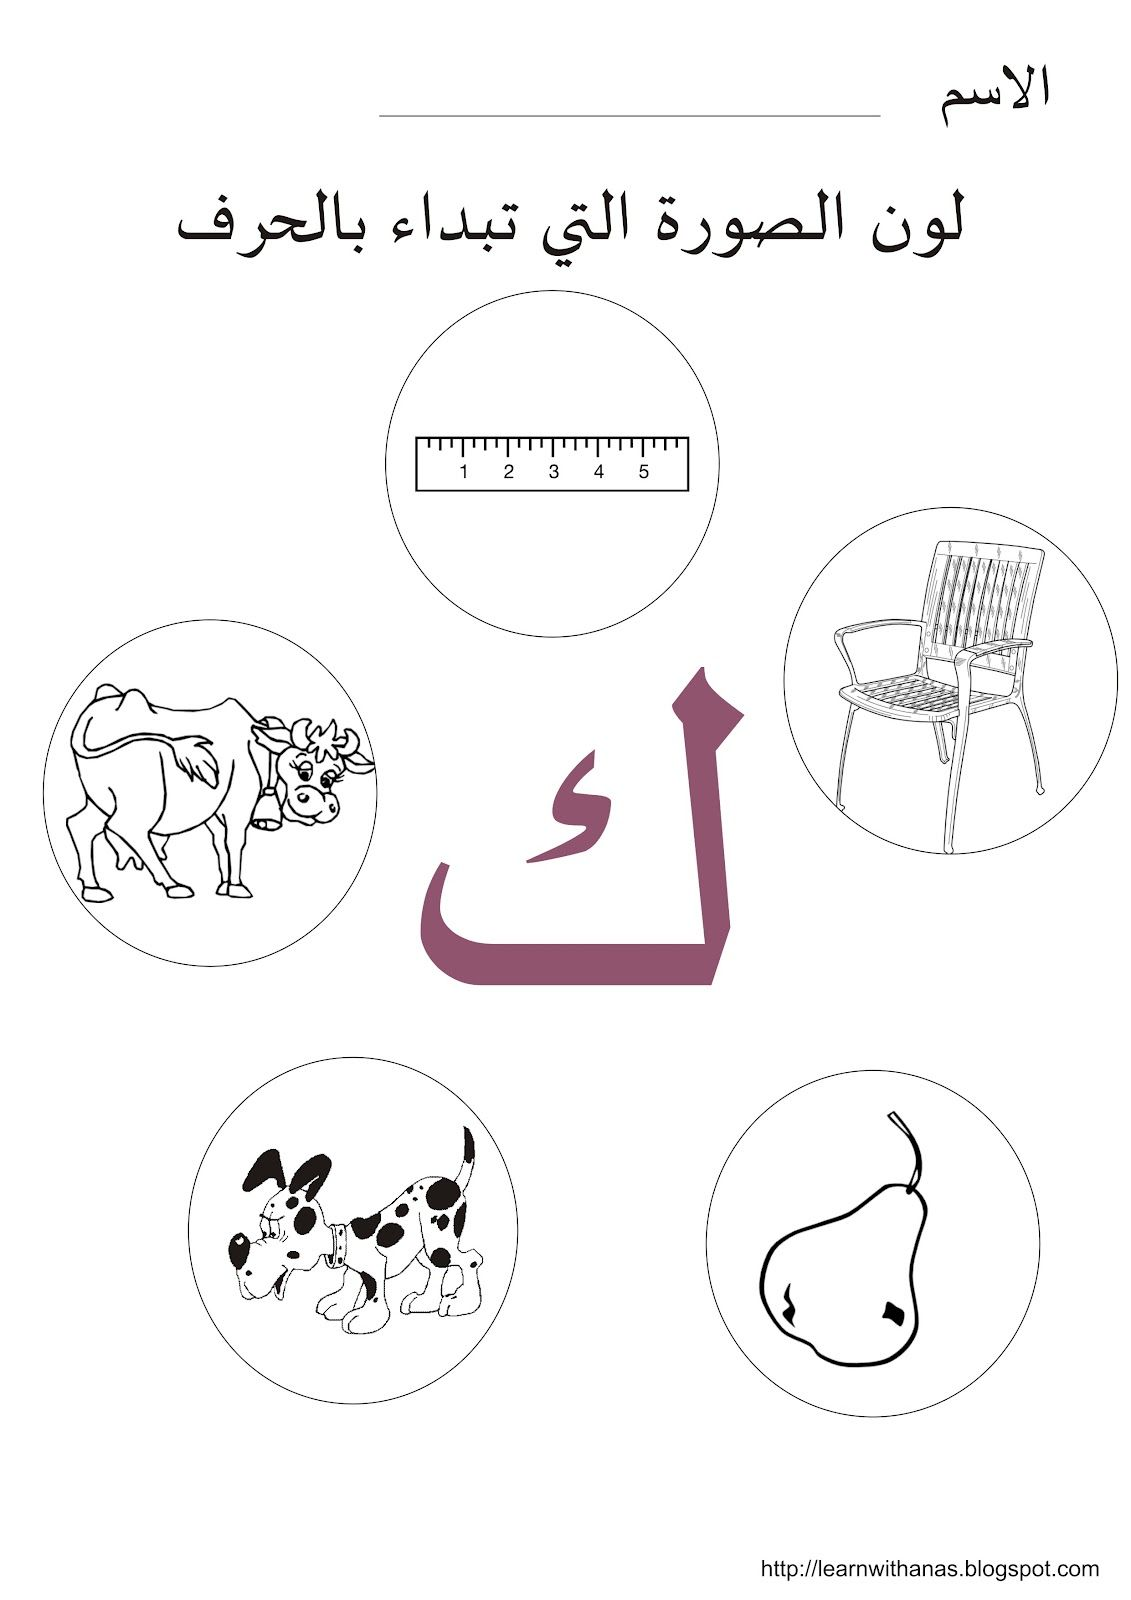 image regarding Arabic Alphabet Worksheets Printable referred to as Kaaf, كاف Arabic Homeschool Finding out arabic, Find out